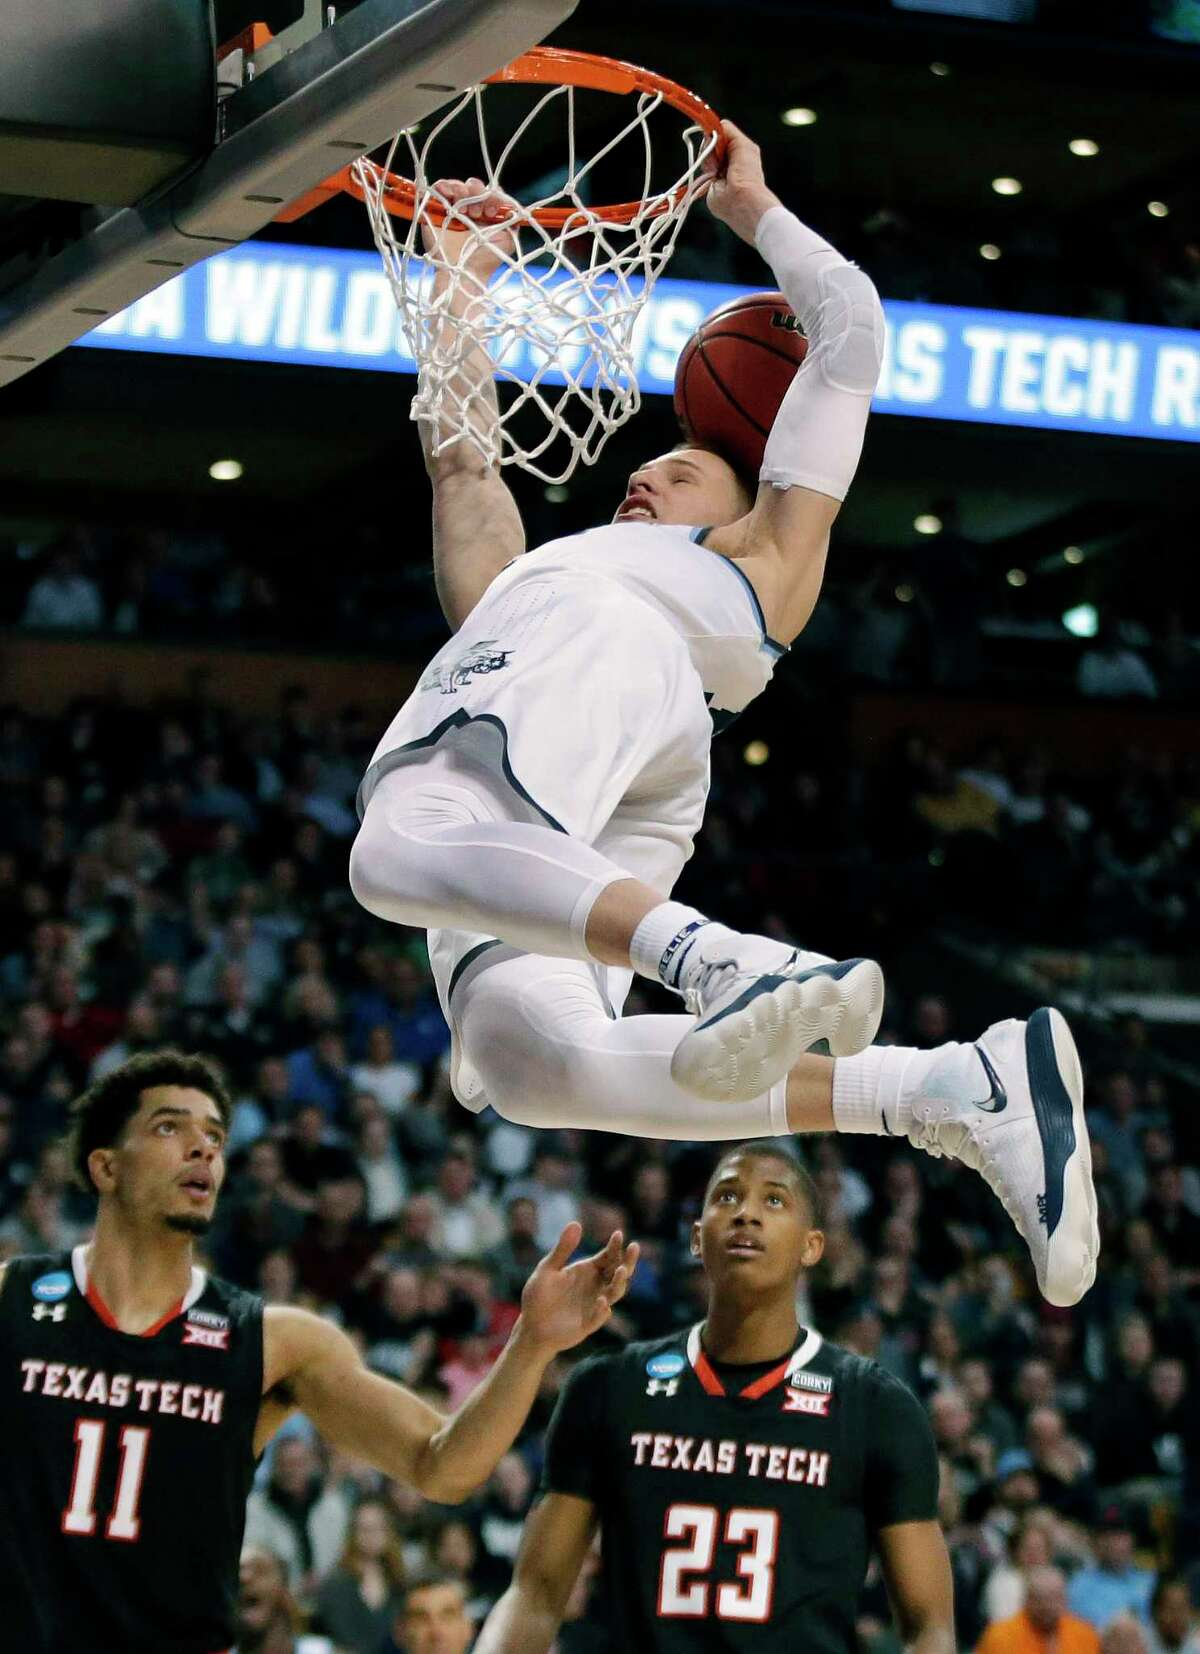 Villanova's Donte DiVincenzo hangs on the rim after dunking over Texas Tech's Zach Smith, left, and Texas Tech's Jarrett Culver, right, during the second half of an NCAA men's college basketball tournament regional final, Sunday, March 25, 2018, in Boston.